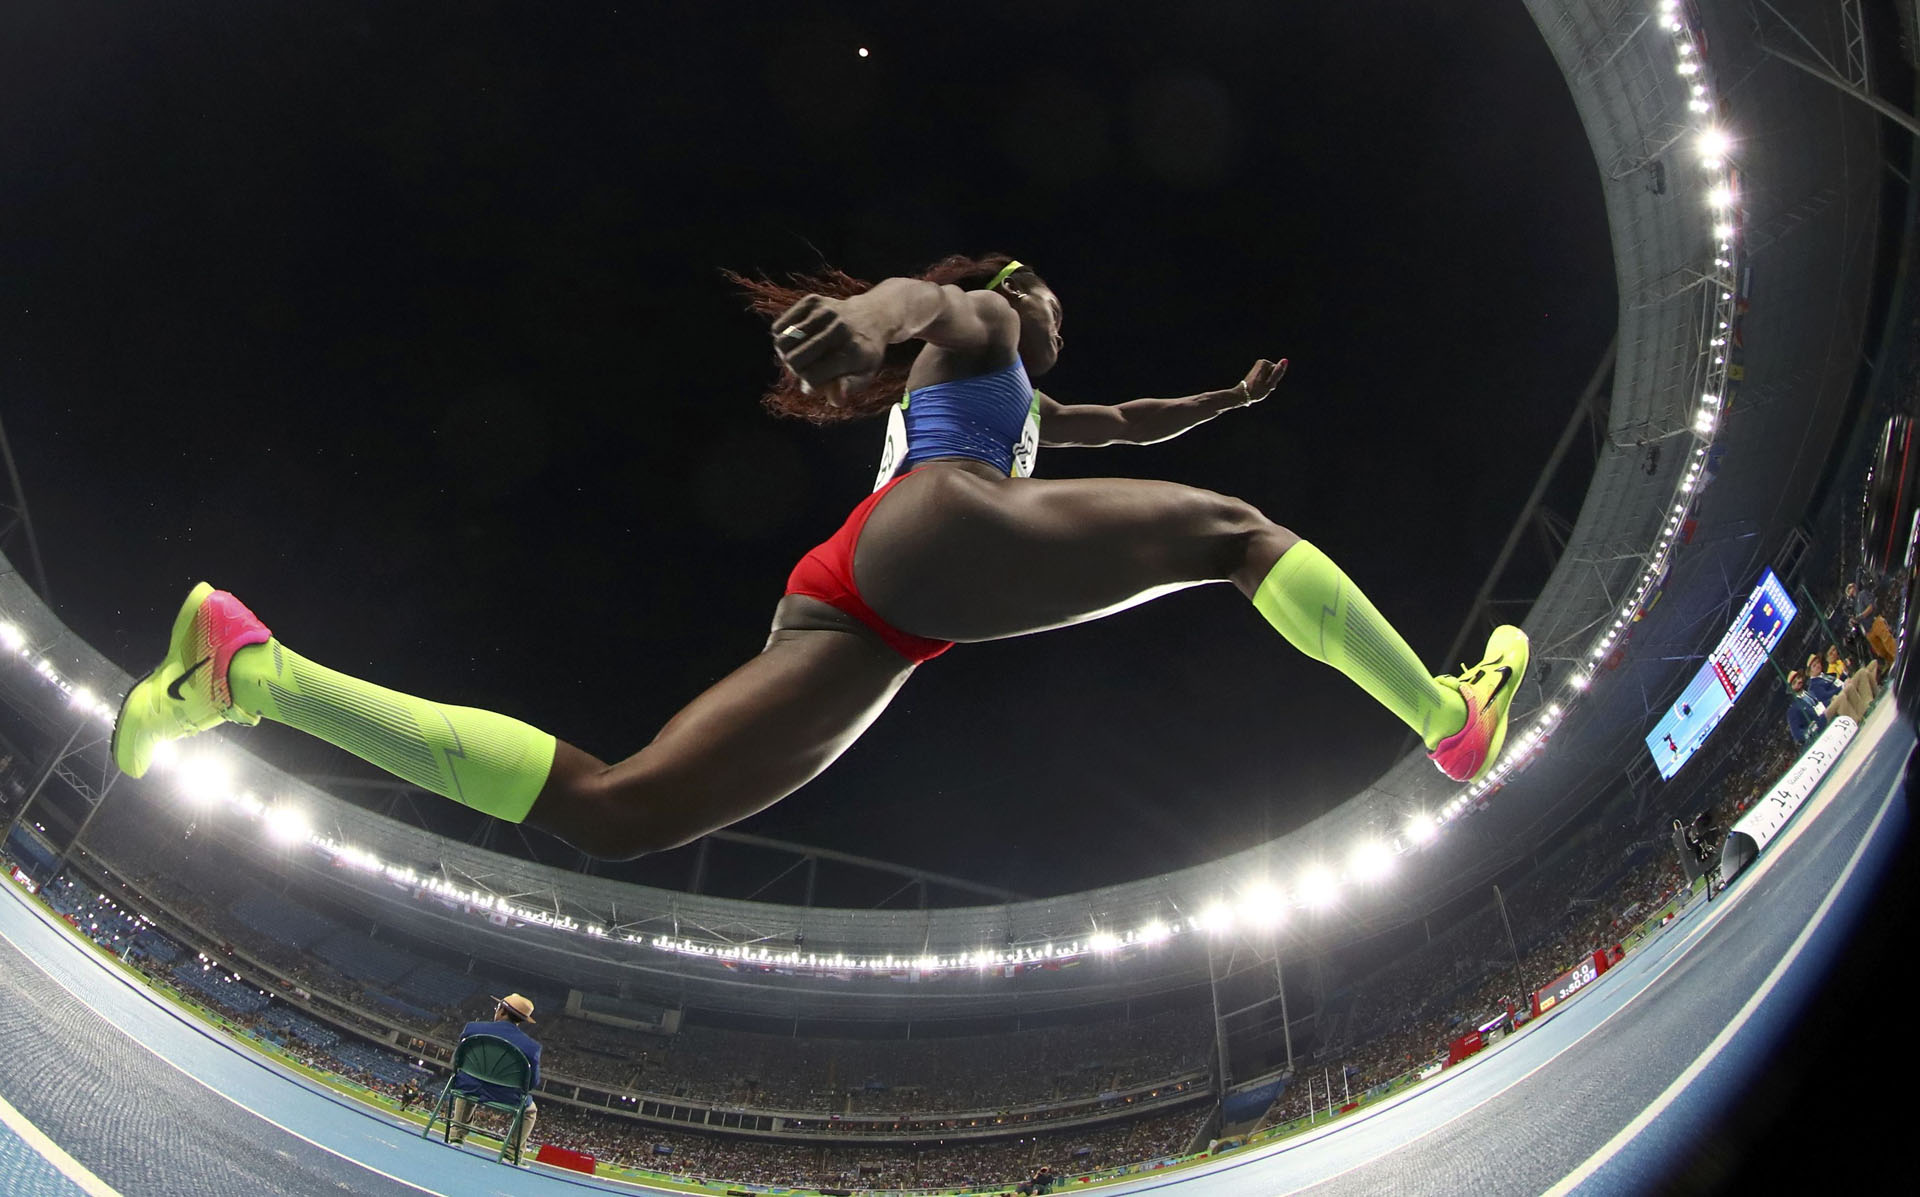 2016 Rio Olympics - Athletics - Final - Women's Triple Jump Final - Olympic Stadium - Rio de Janeiro, Brazil - 14/08/2016.   Caterine Ibarguen (COL) of Colombia competes. REUTERS/Phil Noble  TPX IMAGES OF THE DAY  FOR EDITORIAL USE ONLY. NOT FOR SALE FOR MARKETING OR ADVERTISING CAMPAIGNS.